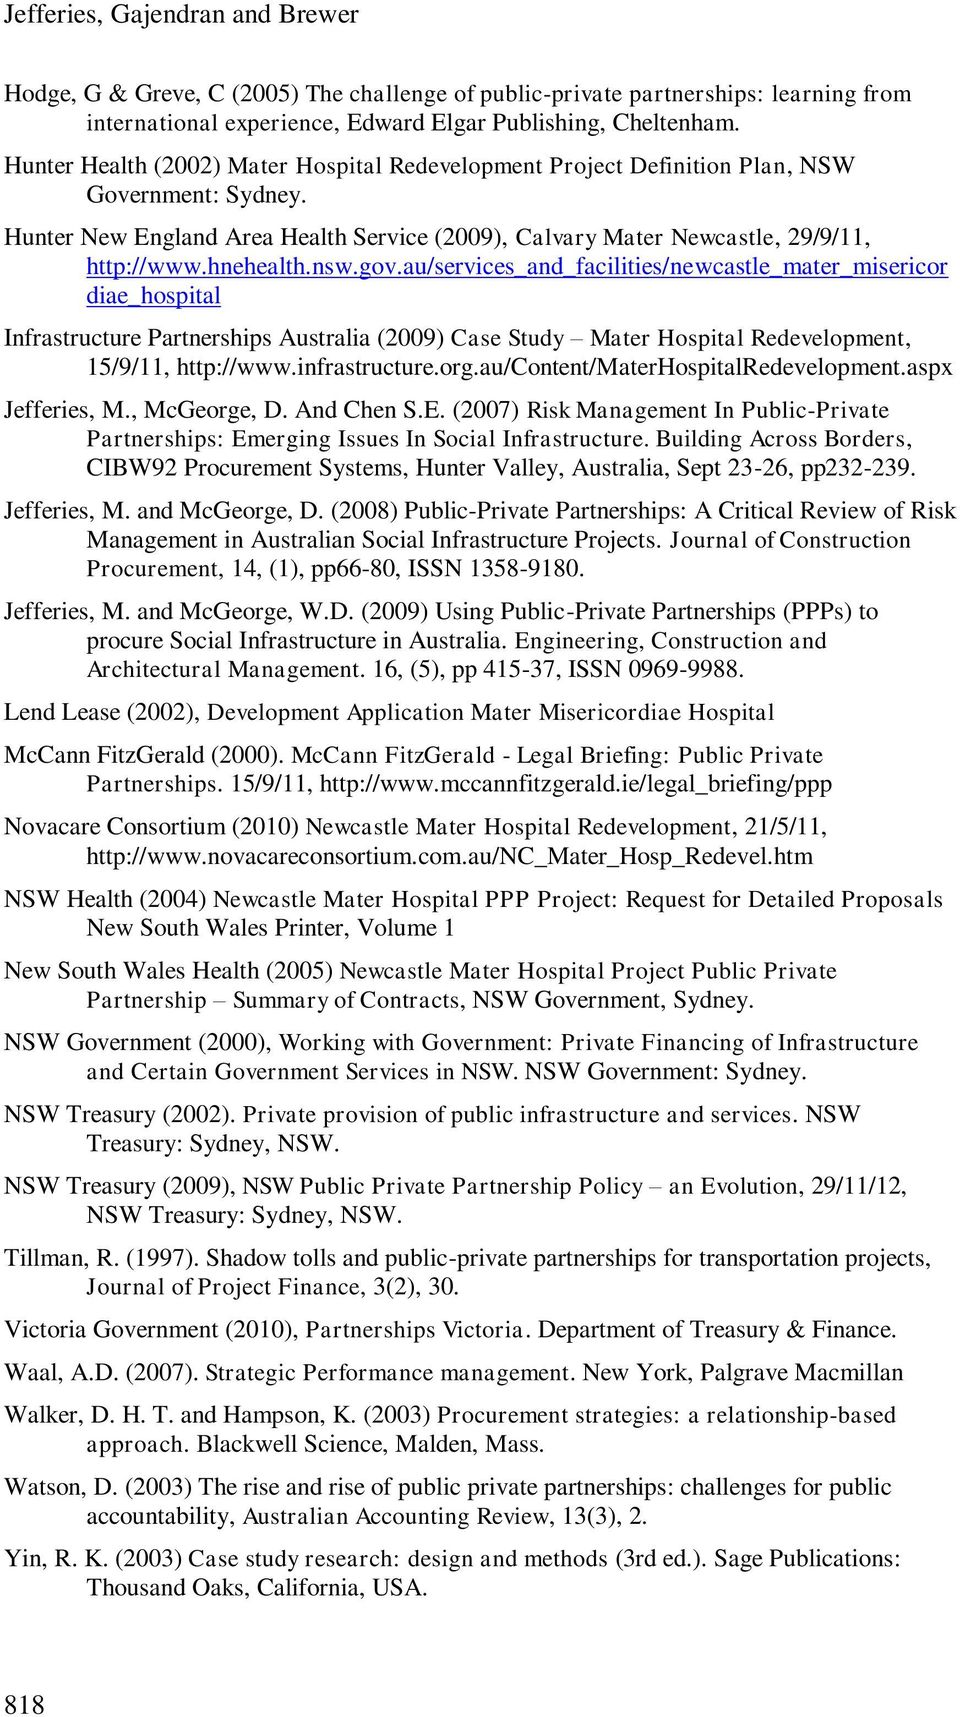 hnehealth.nsw.gov.au/services_and_facilities/newcastle_mater_misericor diae_hospital Infrastructure Partnerships Australia (2009) Case Study Mater Hospital Redevelopment, 15/9/11, http://www.